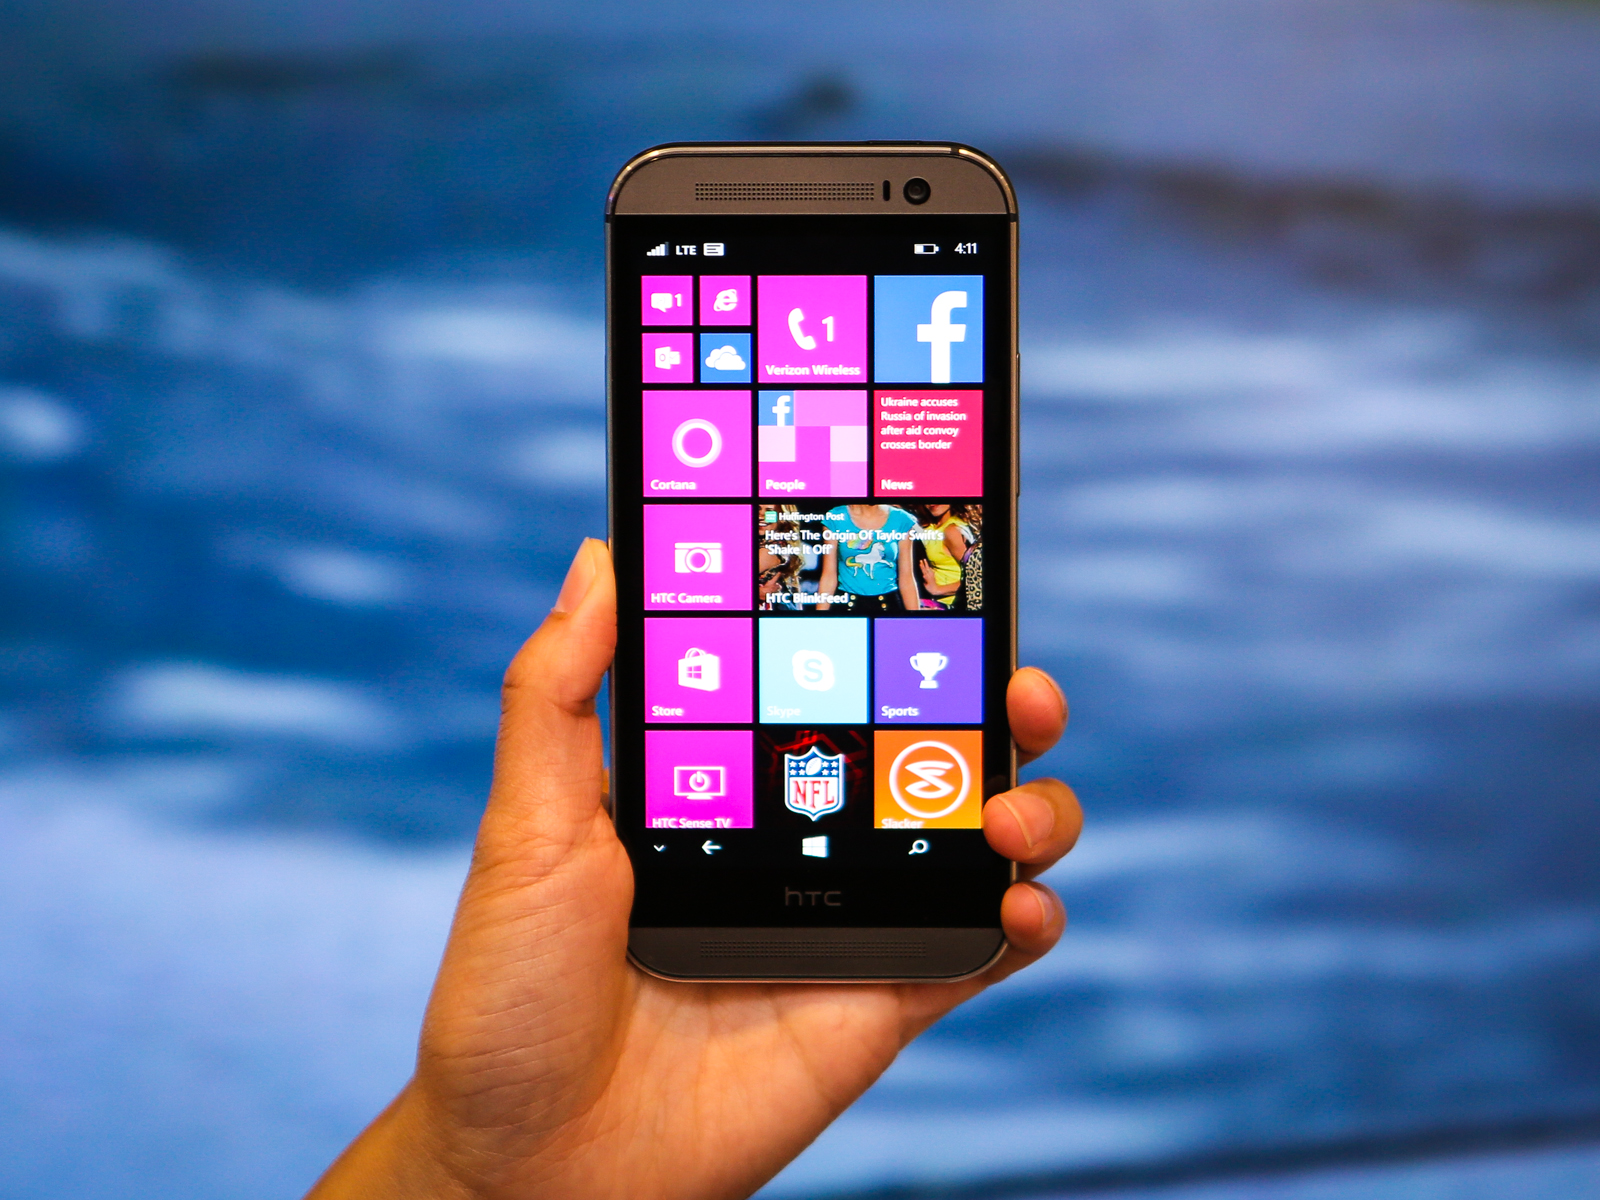 htc-one-m8-for-windows-phone-9103-008.jpg